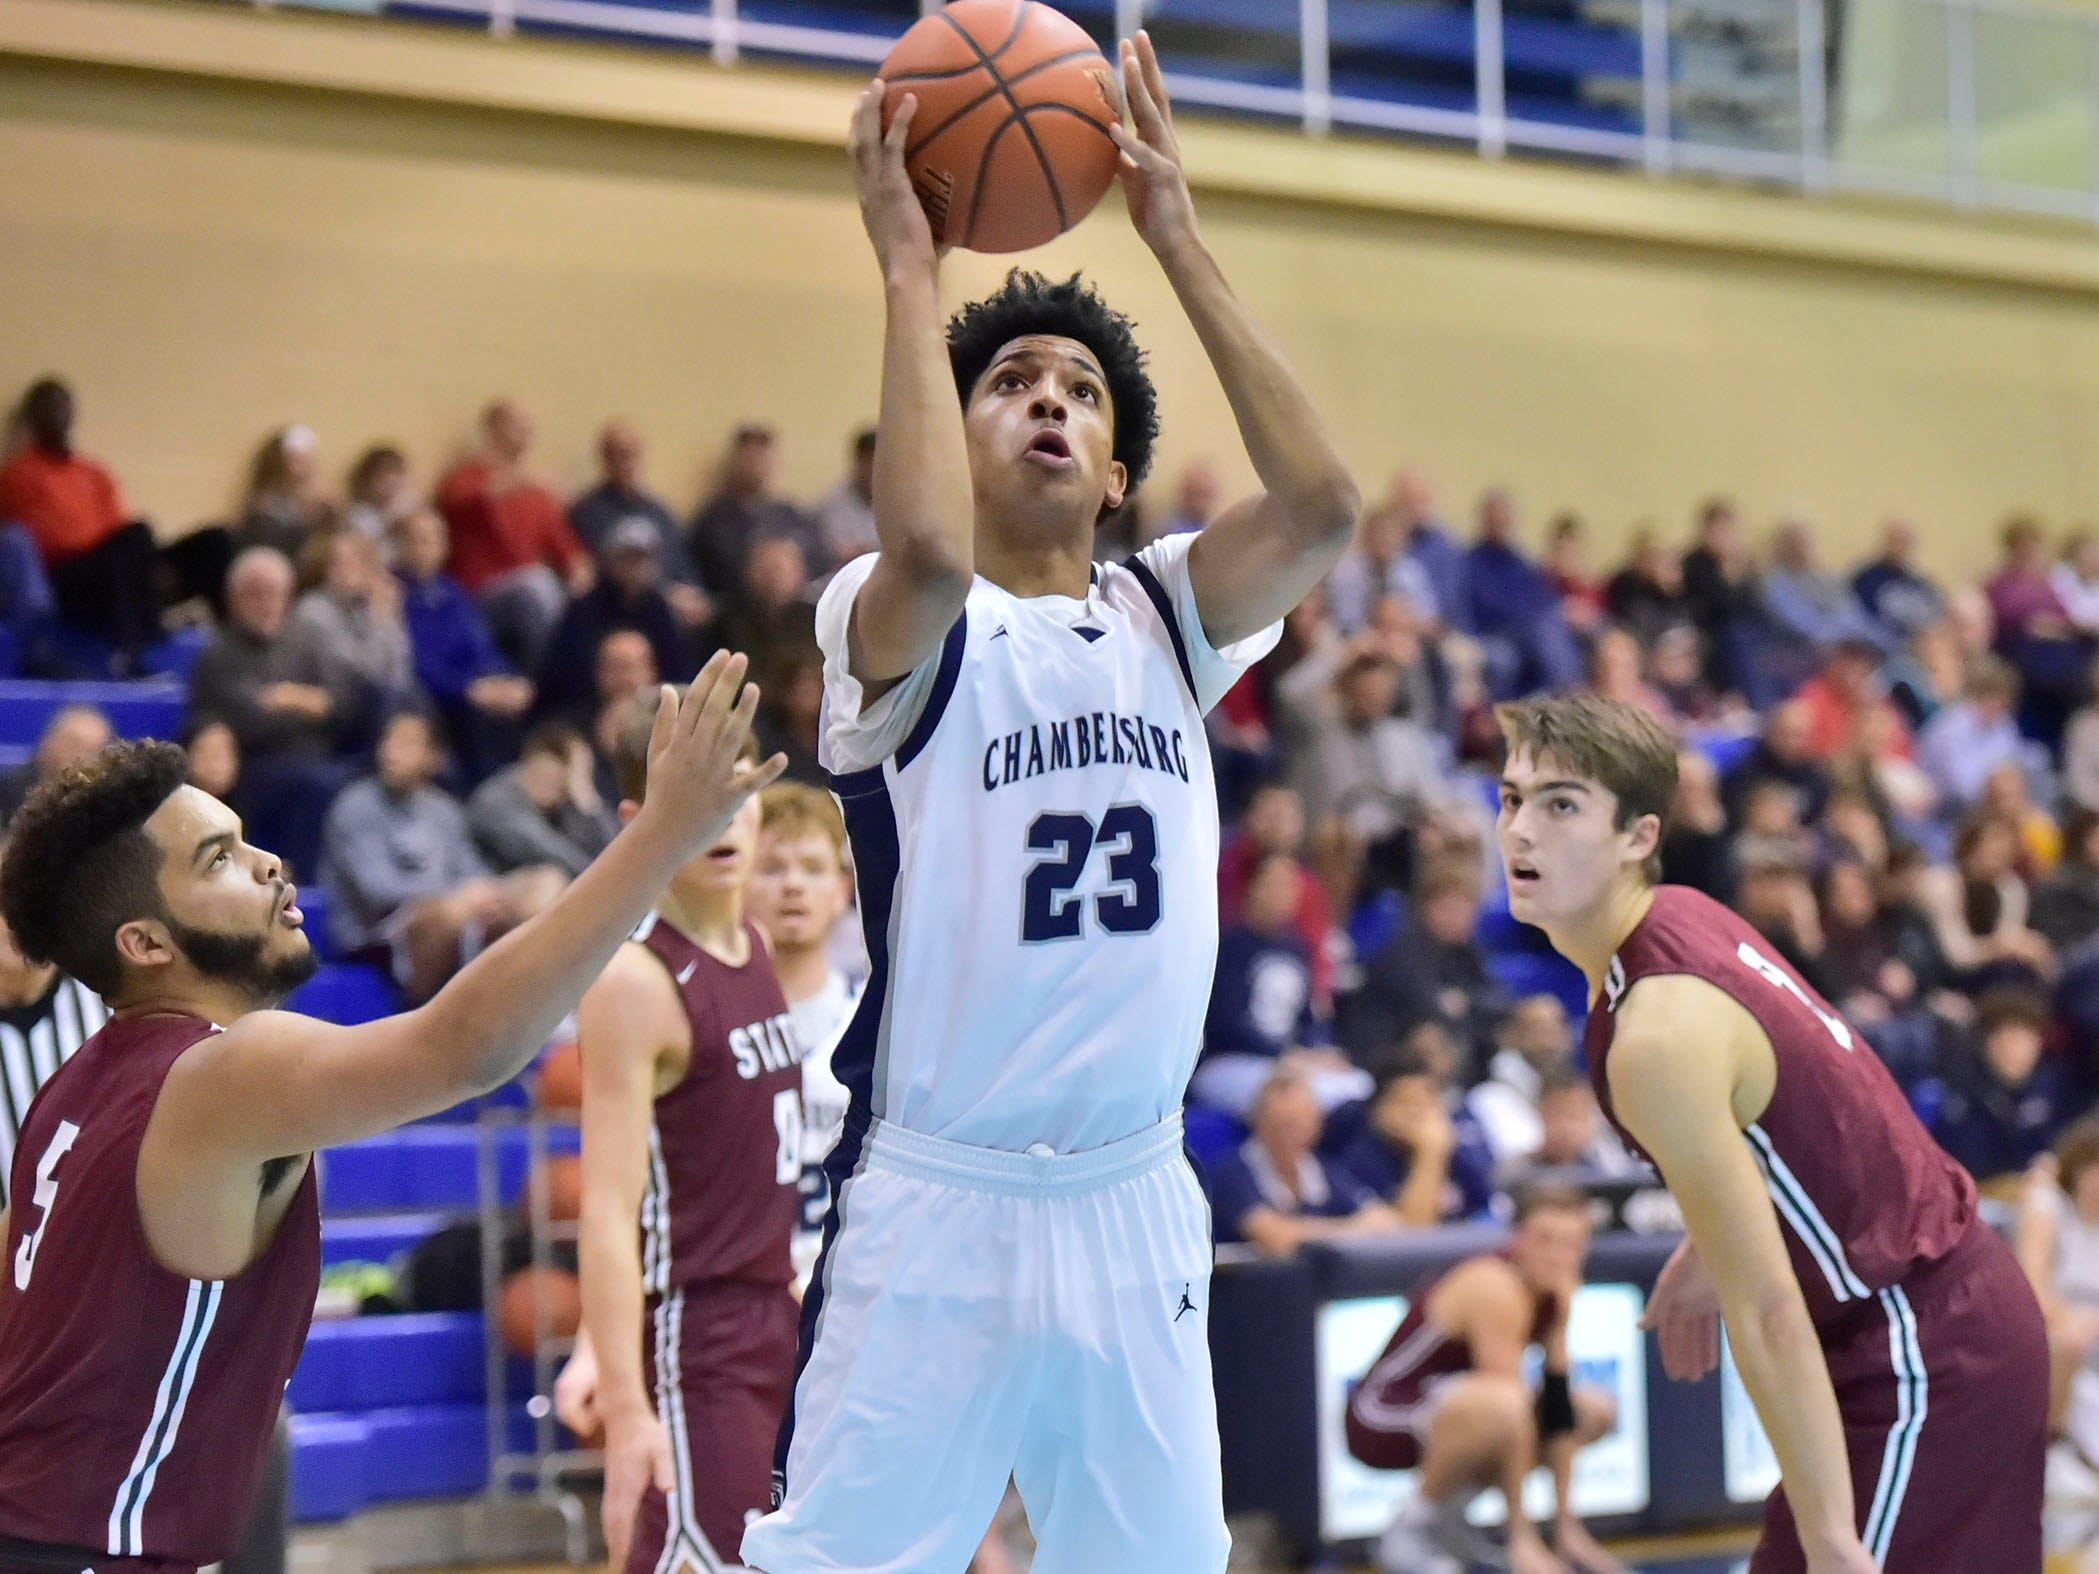 Max Doctor of Chambersburg shoots for the Trojans. Chambersburg dropped a buzzer-beater 42-40 to State College during  D3 basketball, Friday, Dec. 14, 2018.